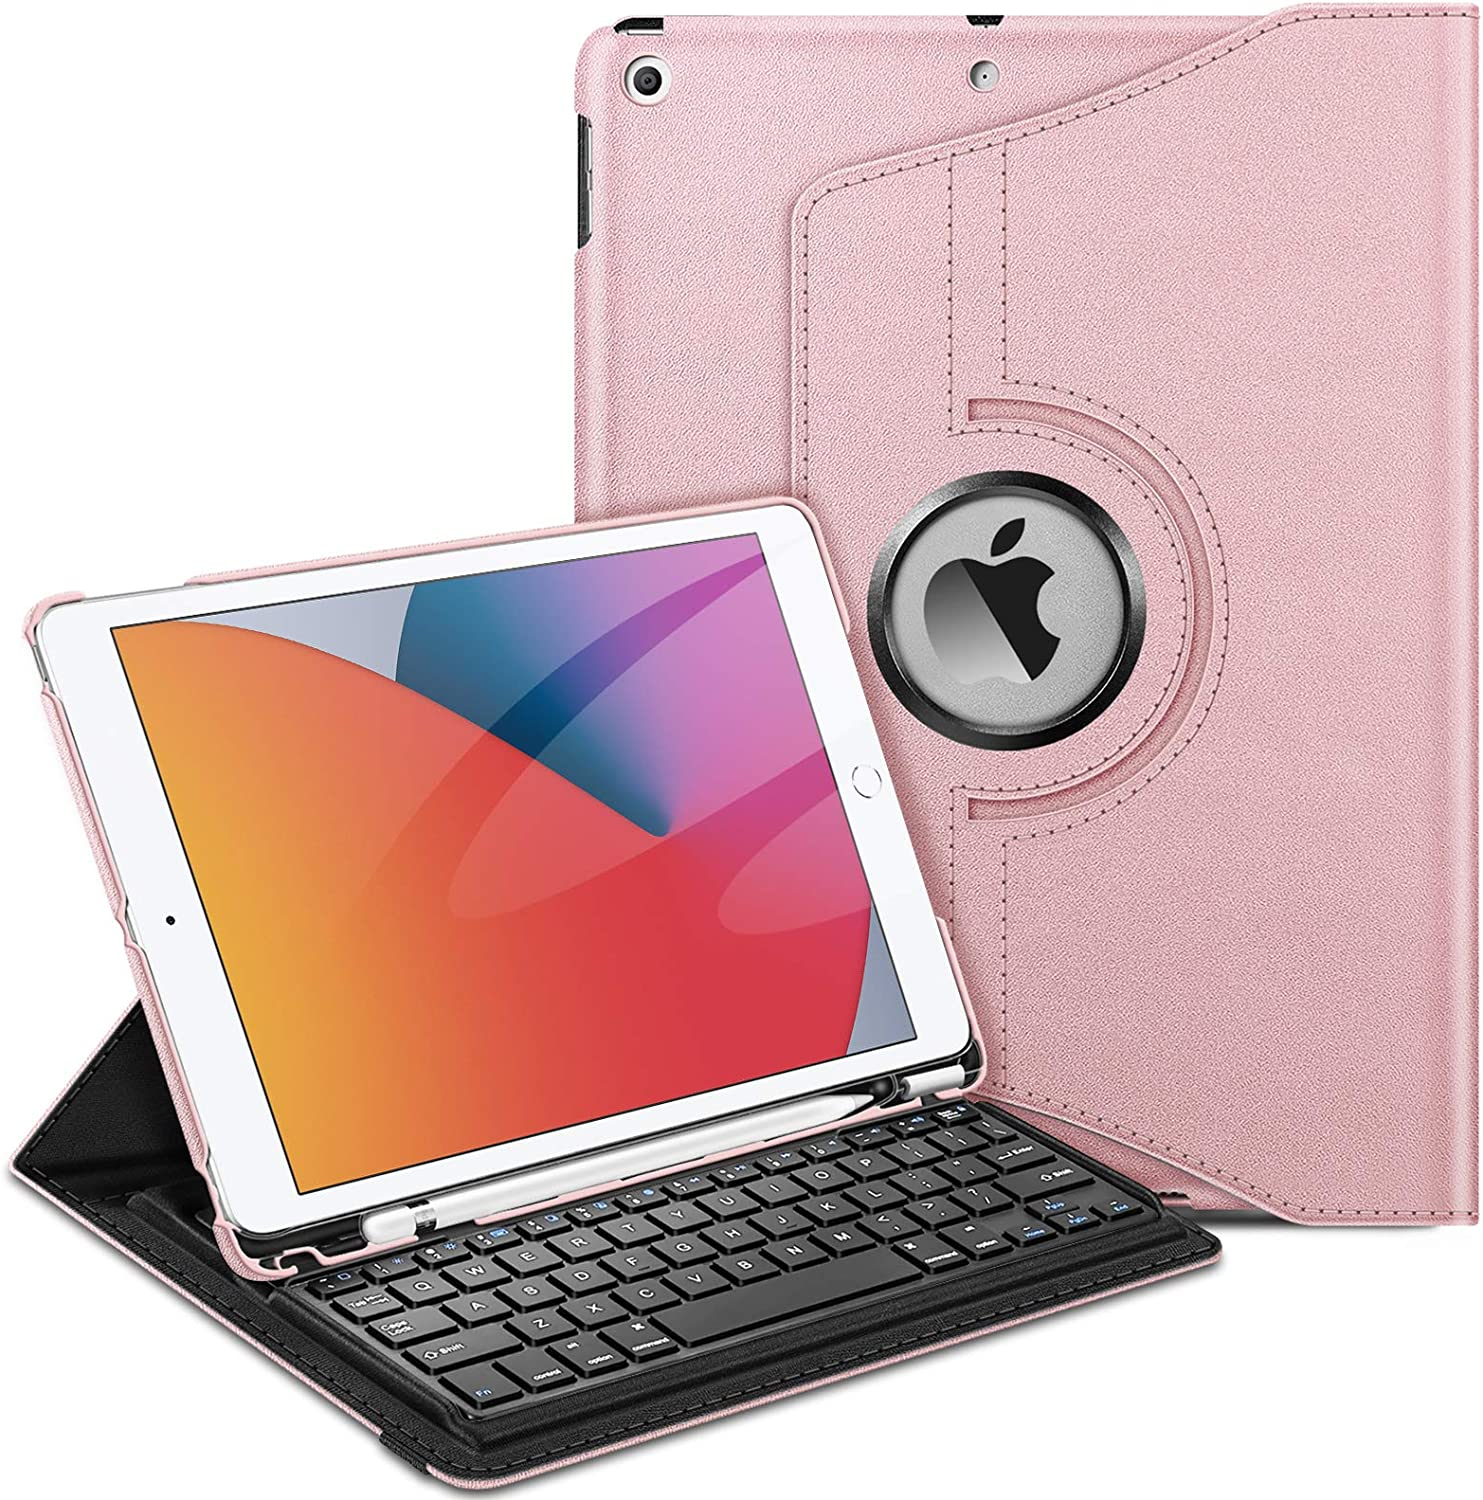 Fintie Keyboard Case for iPad 9th / 8th / 7th Generation (2021/2020/2019 Model) 10.2 Inch, 360 Degree Rotating Smart Stand Cover w/Pencil Holder, Built-in Wireless Bluetooth Keyboard, Rose Gold